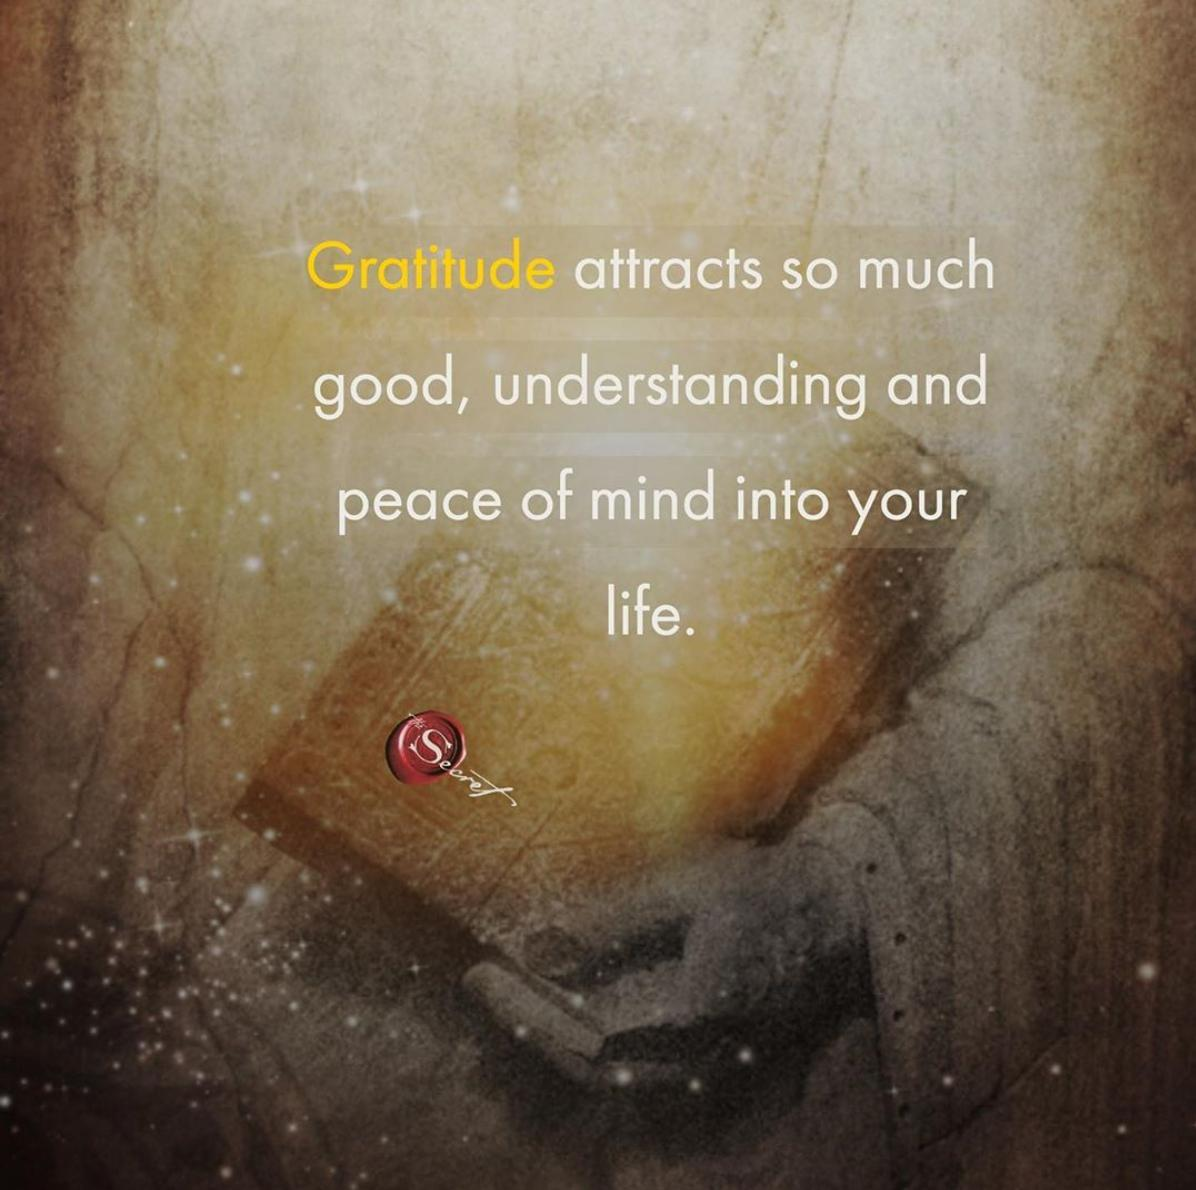 Gratitude eliminates fear, worry, grief, and depression, and brings happiness, clarity, patience, kindness, compassion, understanding, and peace of mind. How do you use gratitude in your life? <br>http://pic.twitter.com/xfyIiFhfYQ